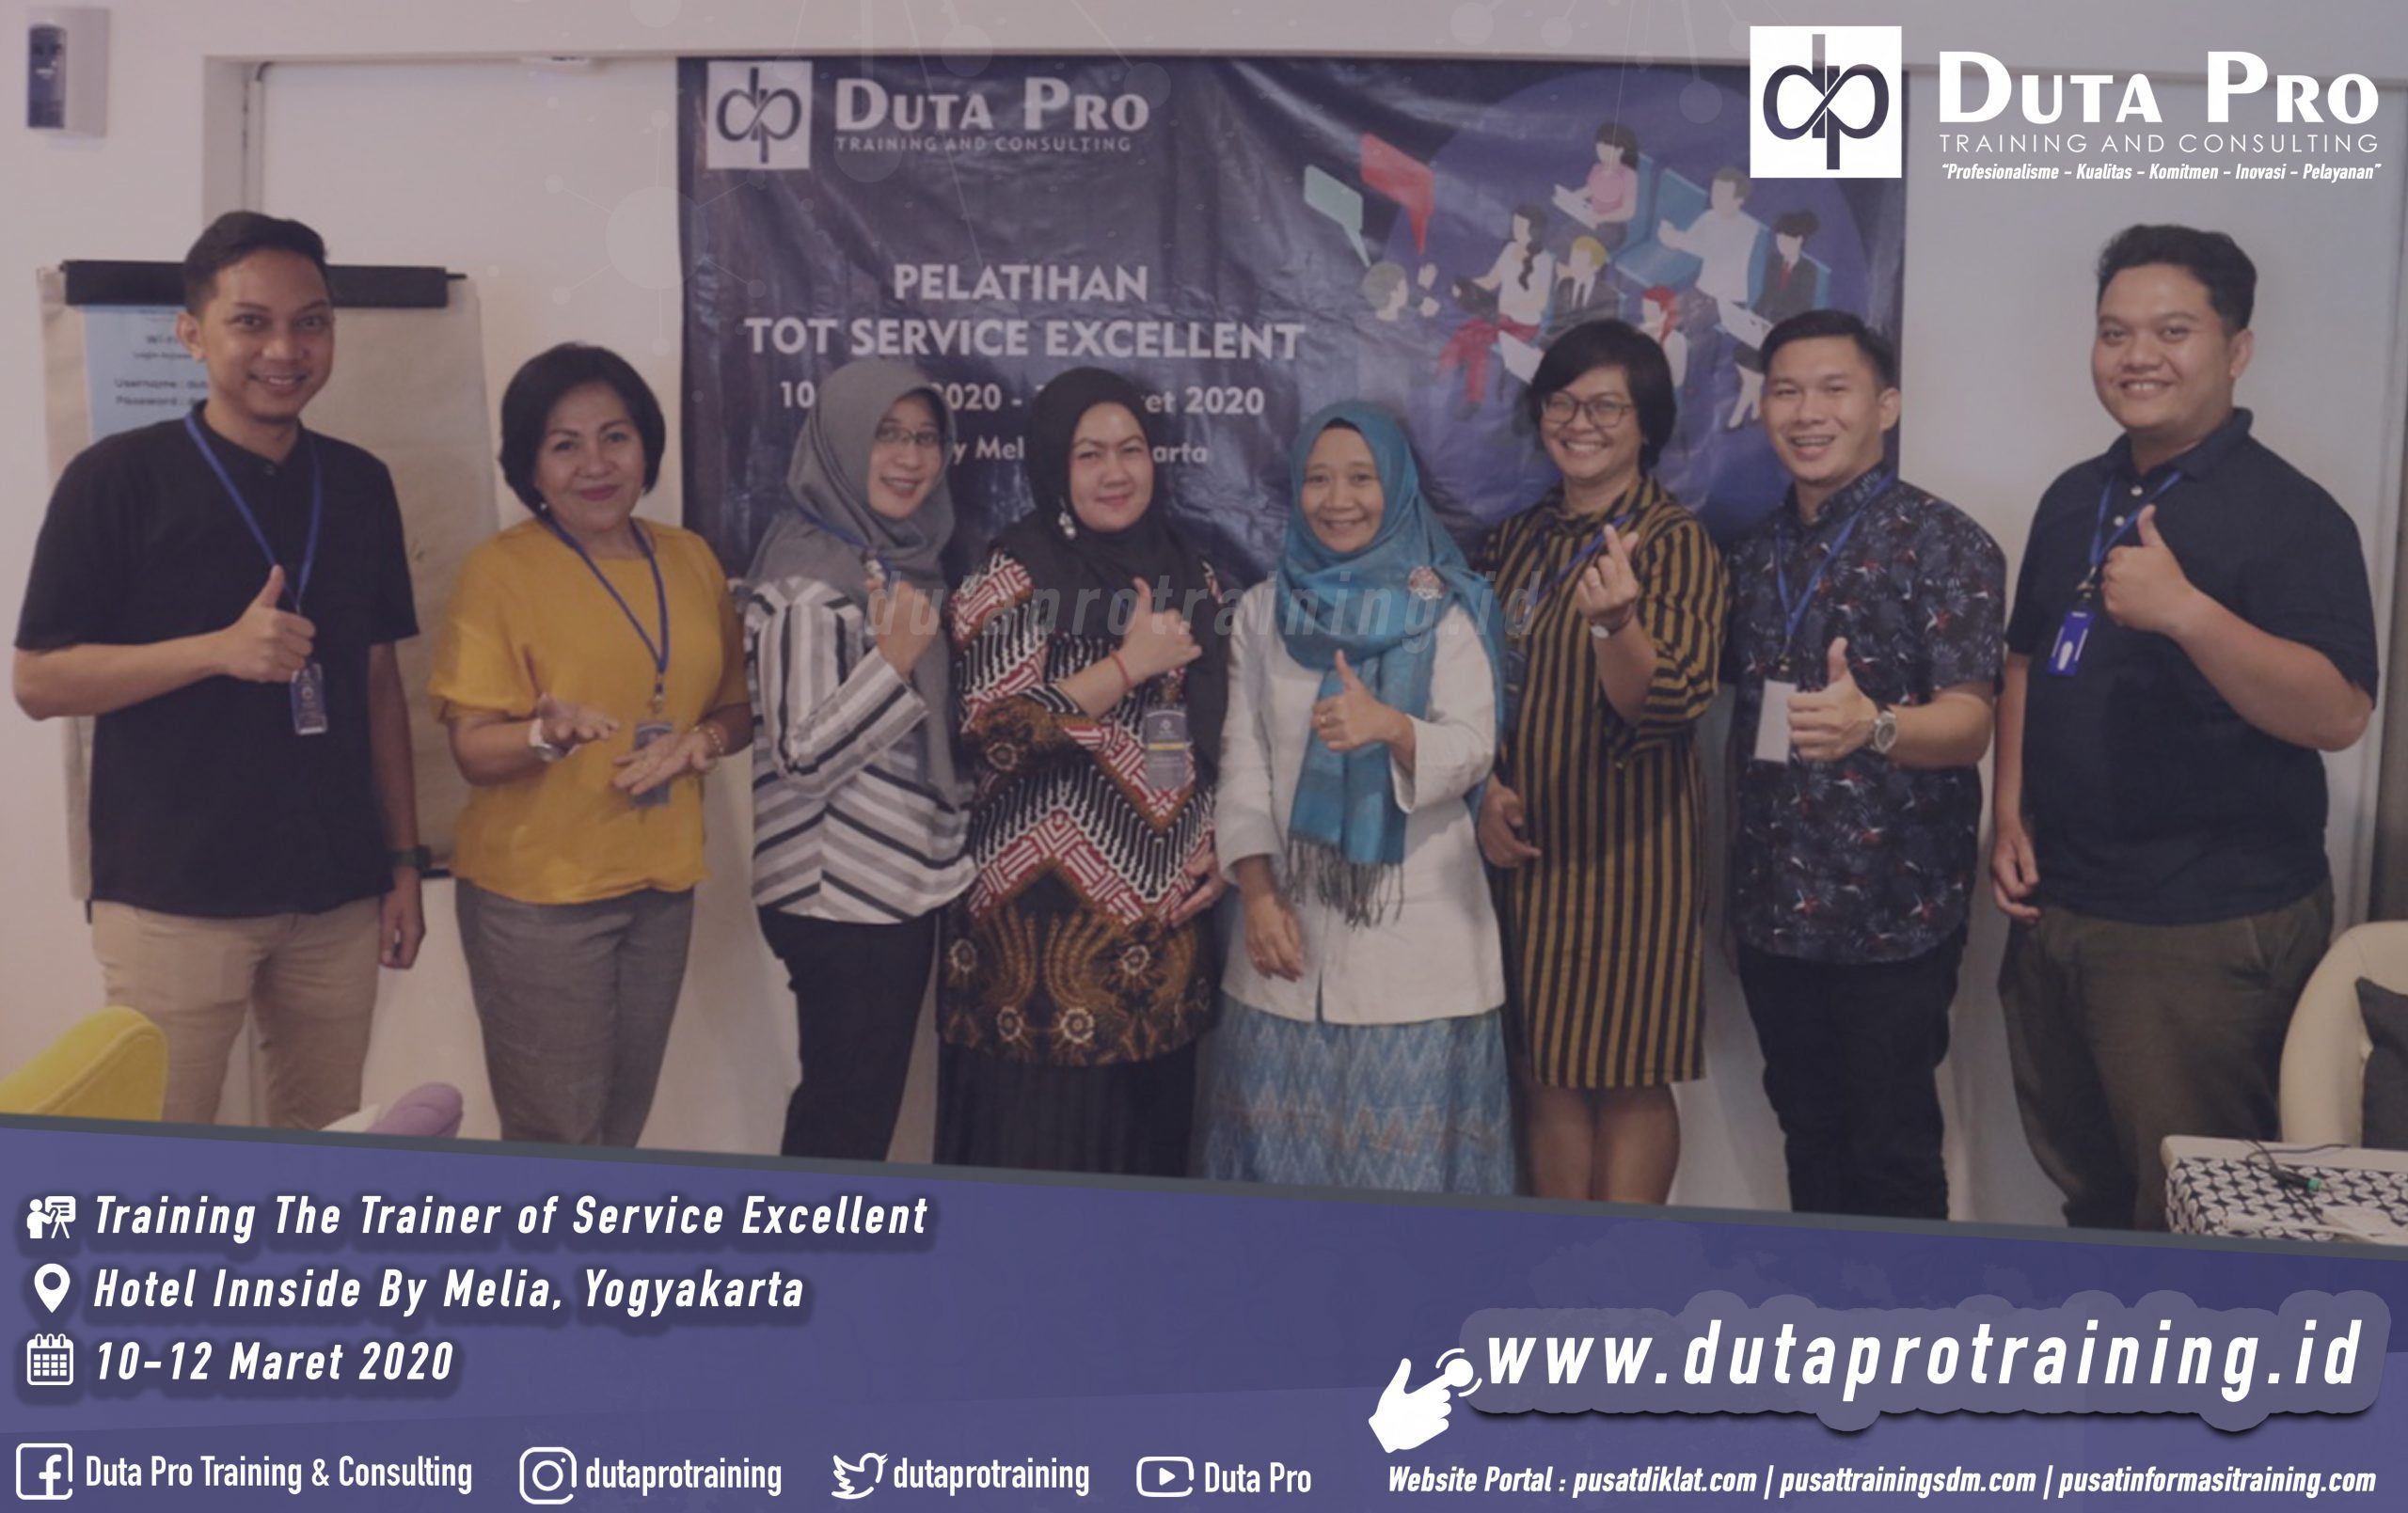 Training The Trainer of Service Excellent Yogyakarta Galeri Website scaled 2559x1609 - Layanan Kami